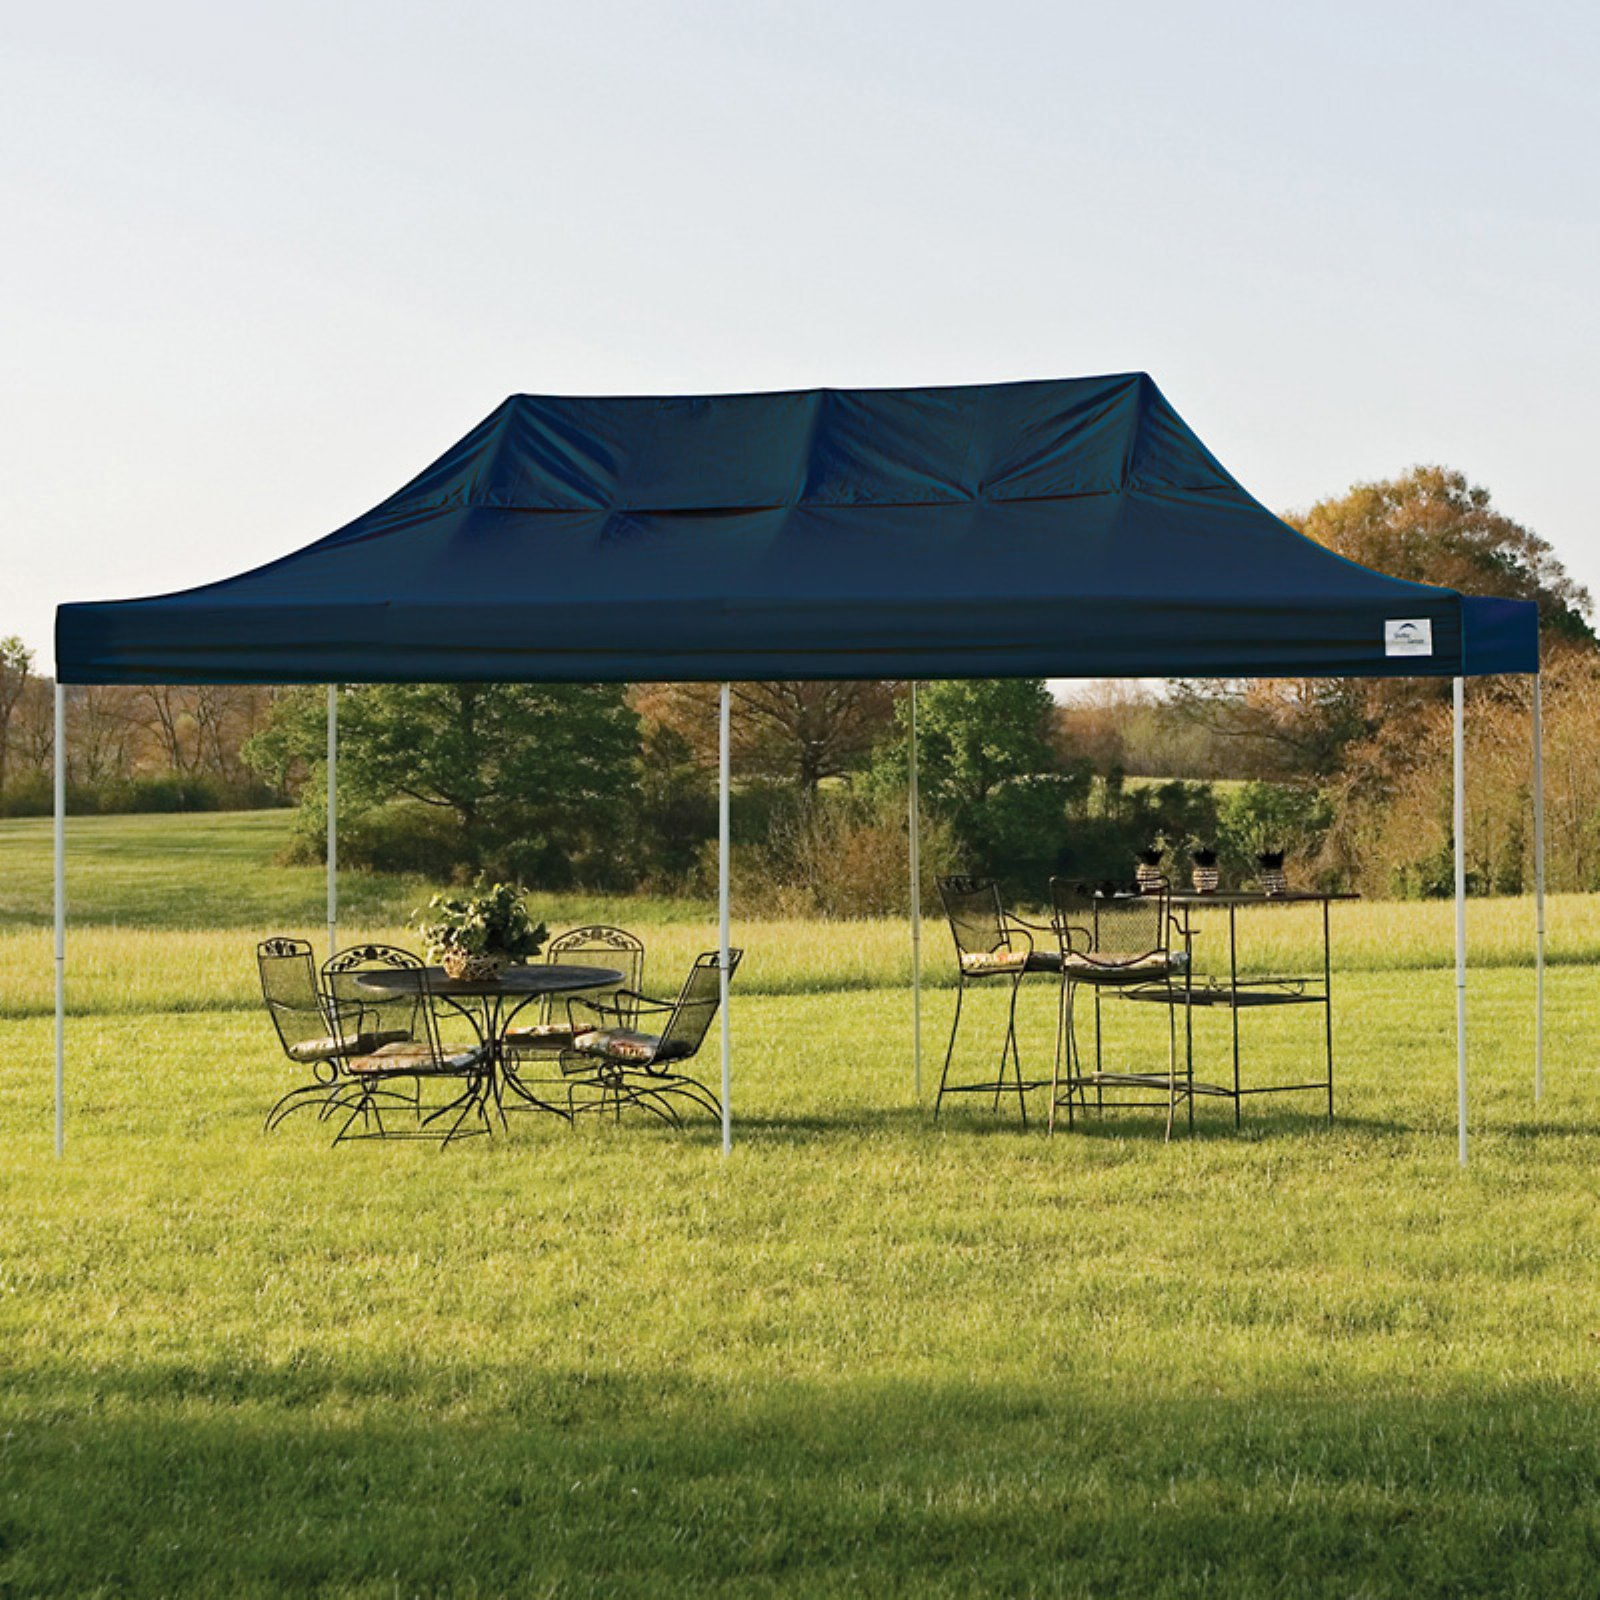 10' x 20' Pro Pop-up Canopy Straight Leg, White Cover